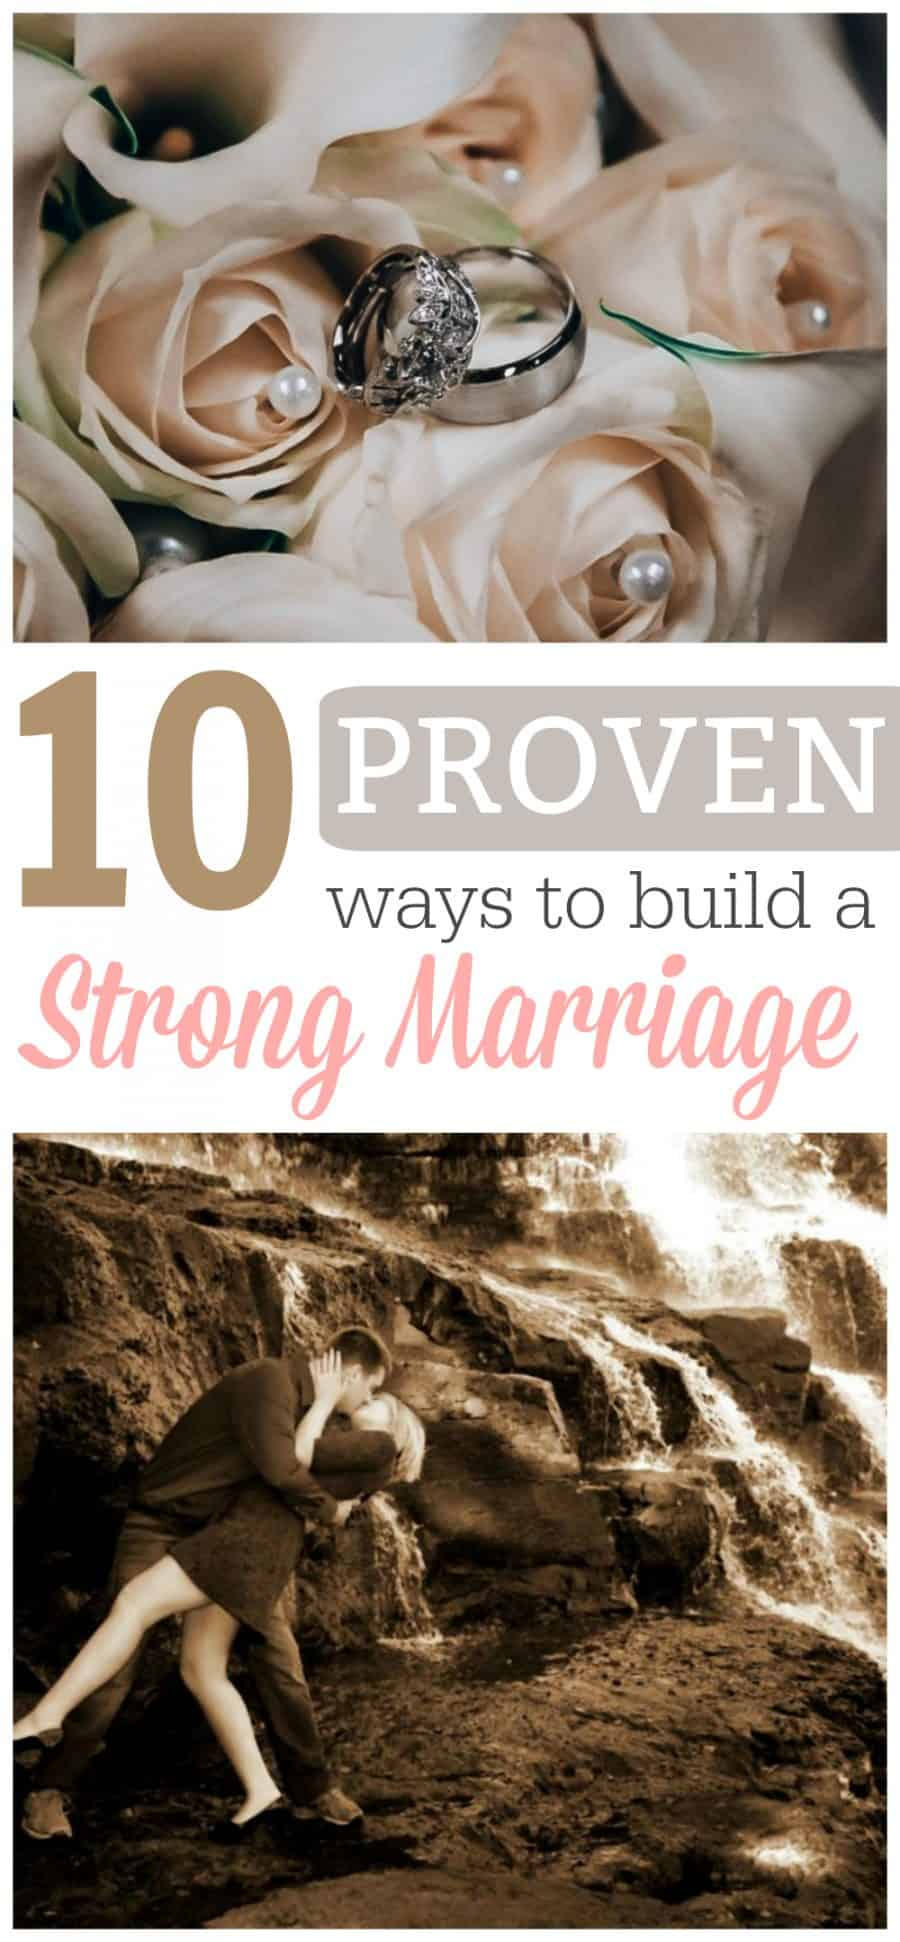 Proven Ways to Build A Strong Marriage 2